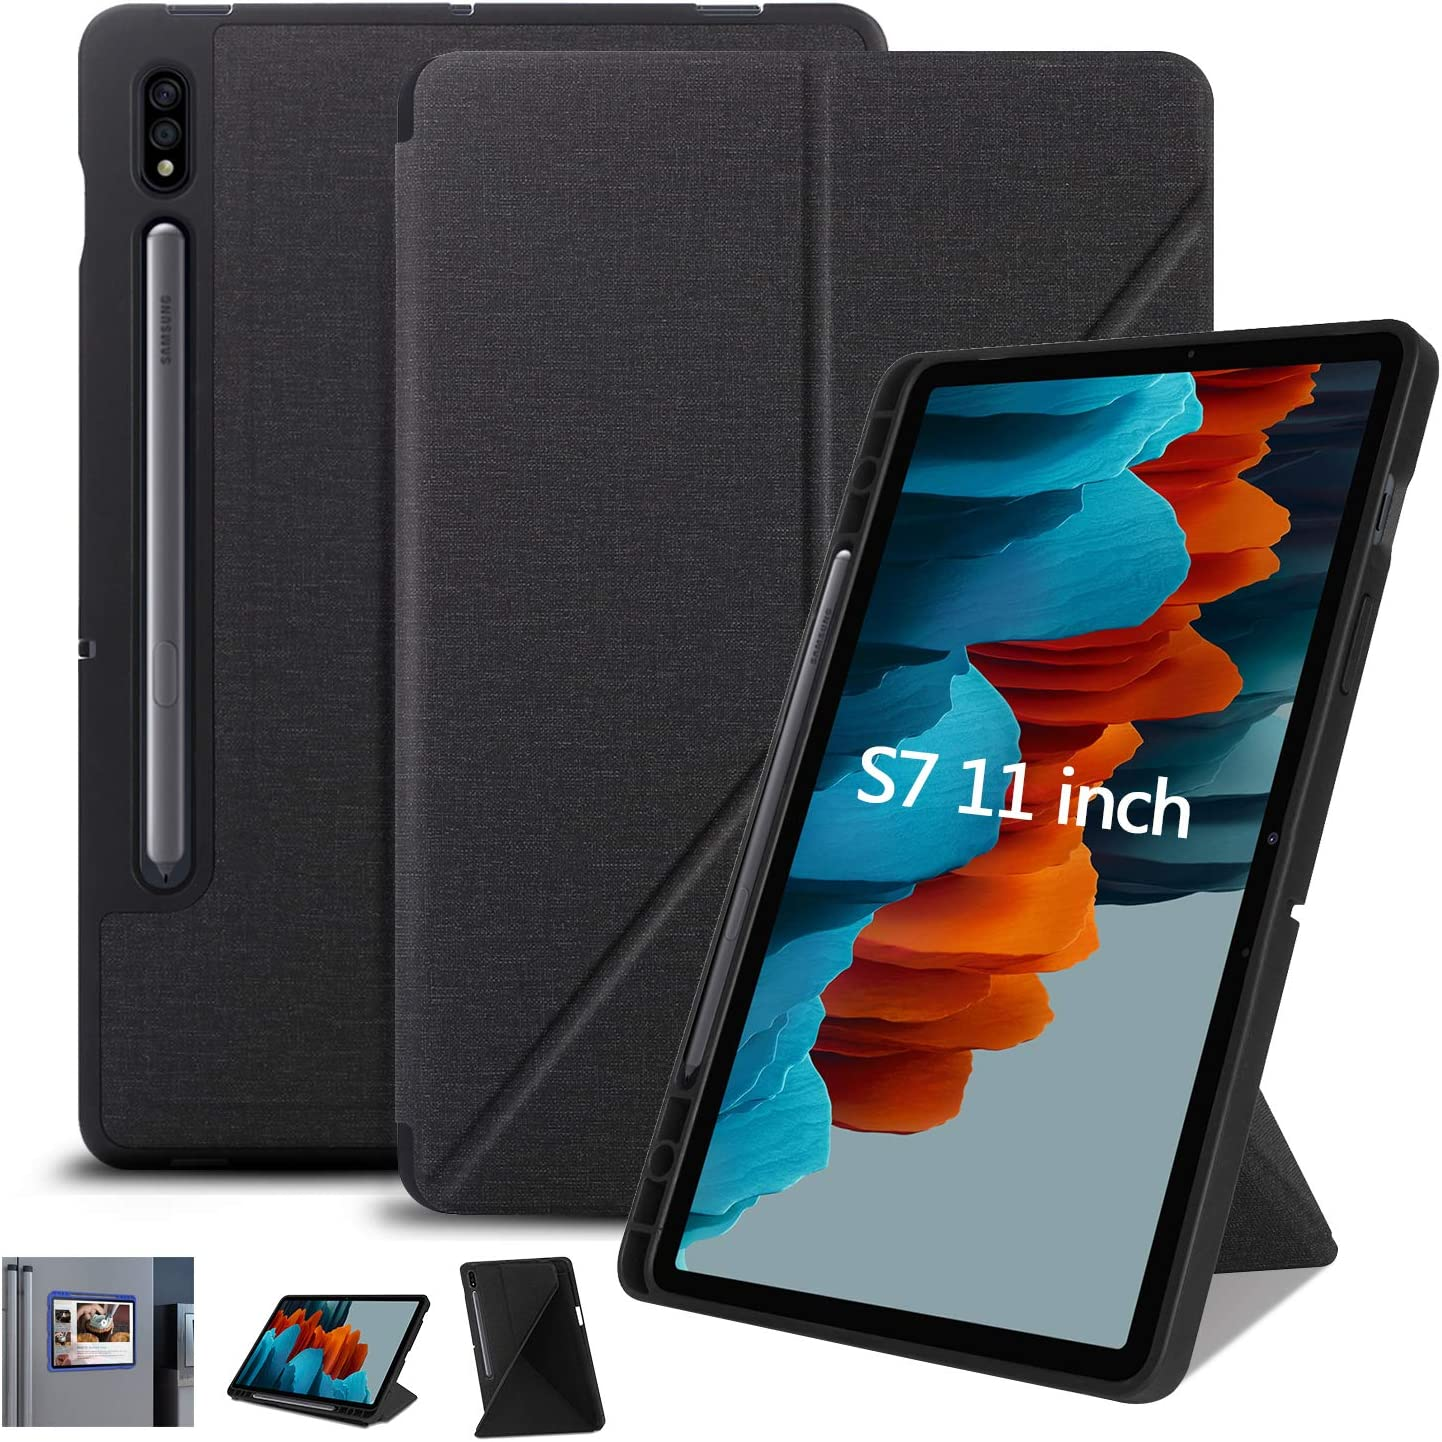 Case for Samsung Galaxy Tab S7 11 inch 2020 Slim Folding Stand Case MultiViewing Angles Soft TPU Back Cover for Samsung Tab S7 11 inch Tablet SMT870T8 at Kapruka Online for specialGifts